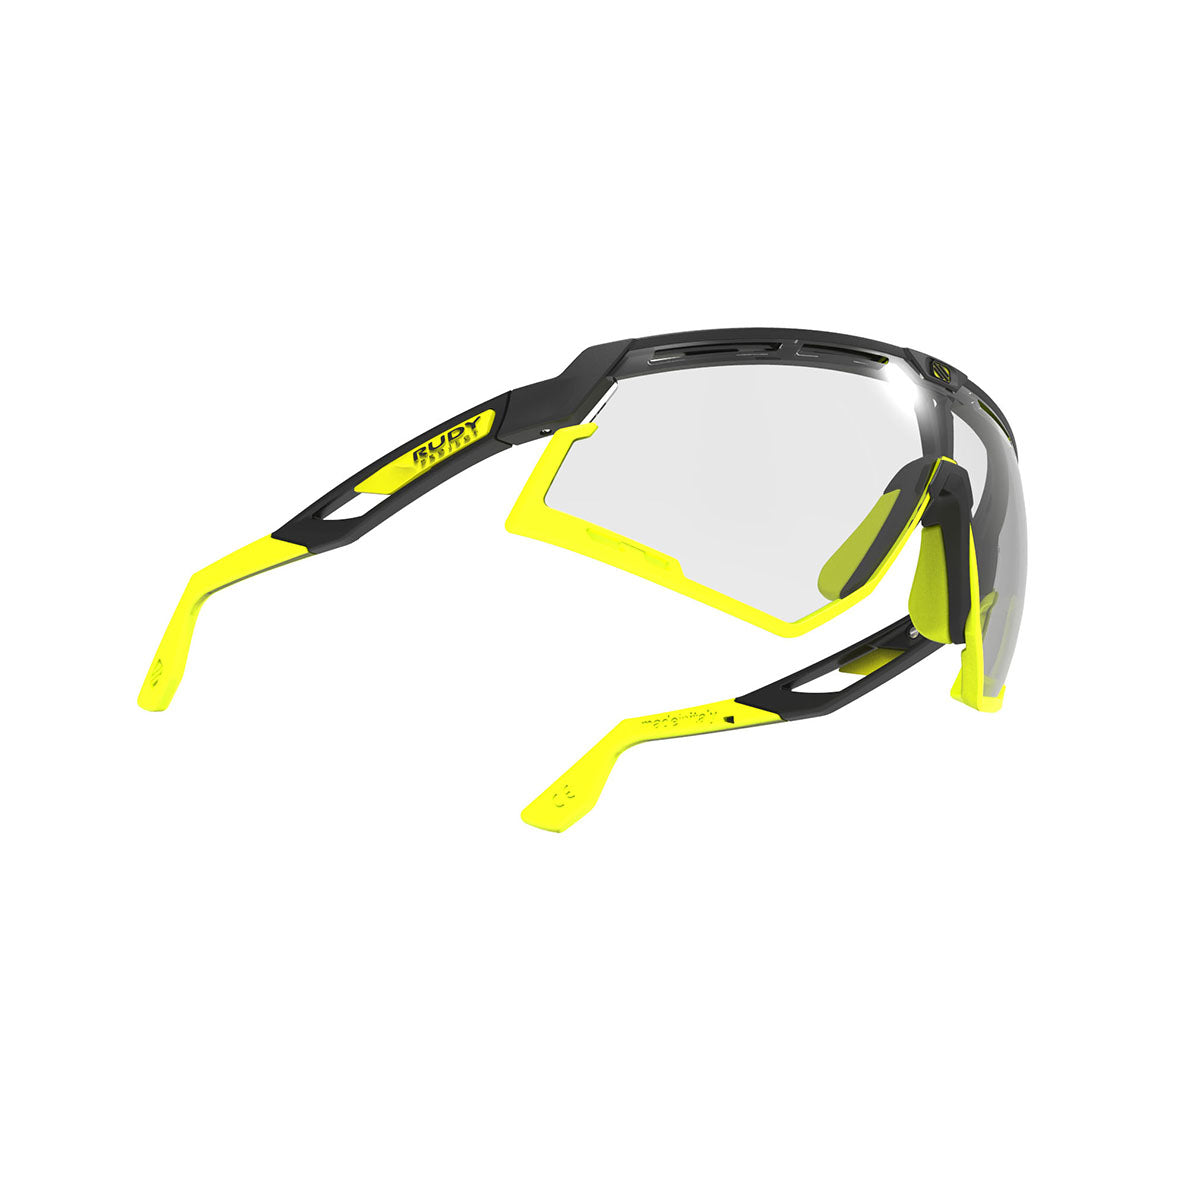 Rudy Project - Defender - frame color: Matte Black - lens color: ImpactX-2 Photochromic Clear to Laser Black - Bumper Color: Yelow Fluo - photo angle: Bottom Front Angle Variant Hover Image